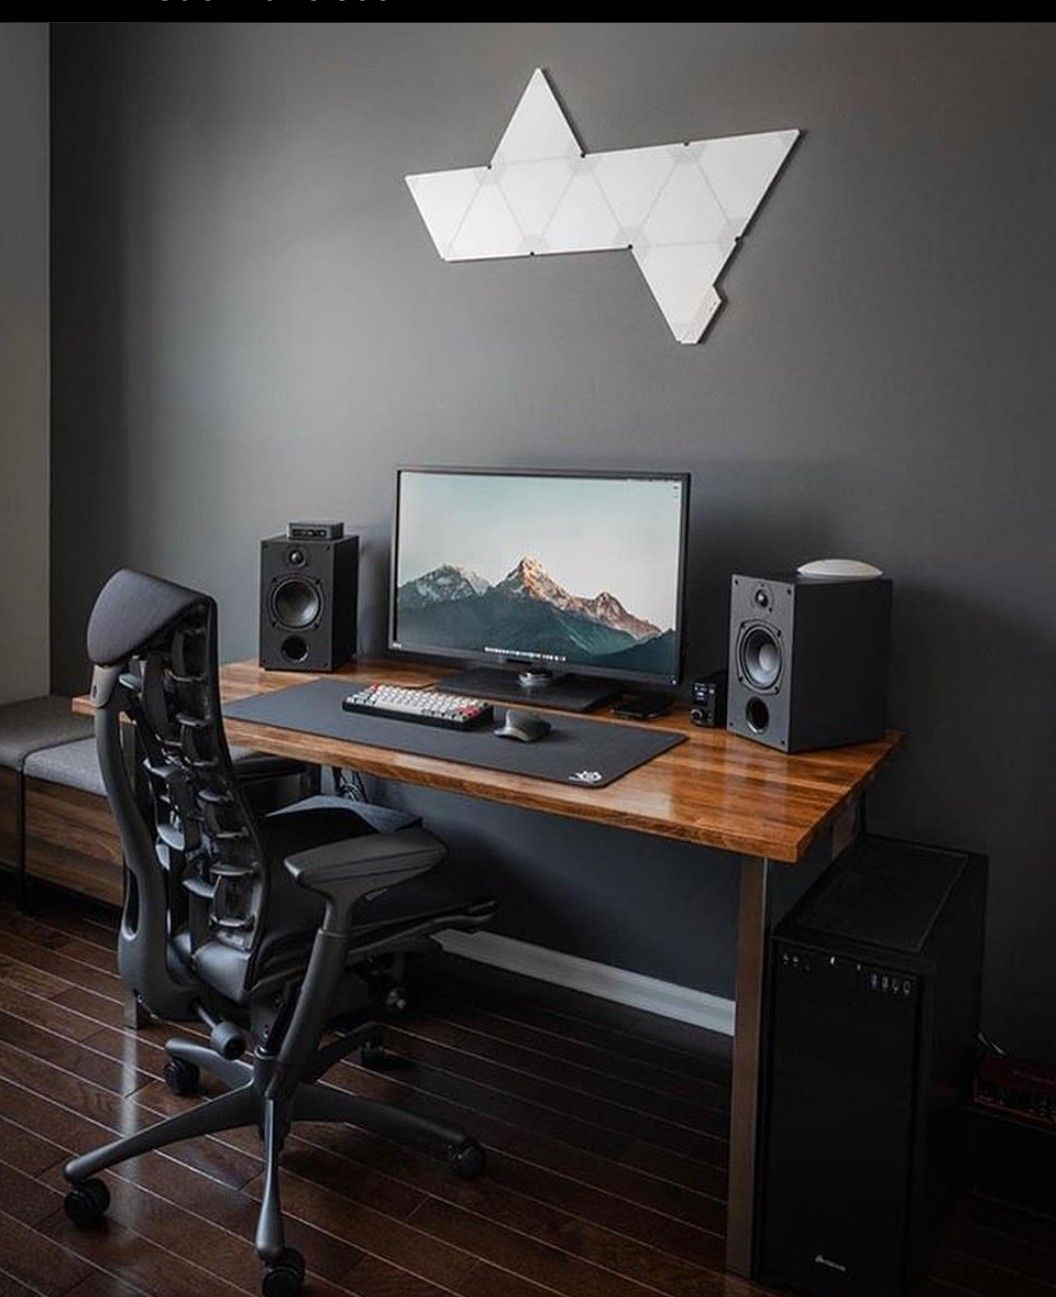 Pin By Jacksepticeye On Room Ideas In 2020 Home Office Setup Desk Setup Room Setup